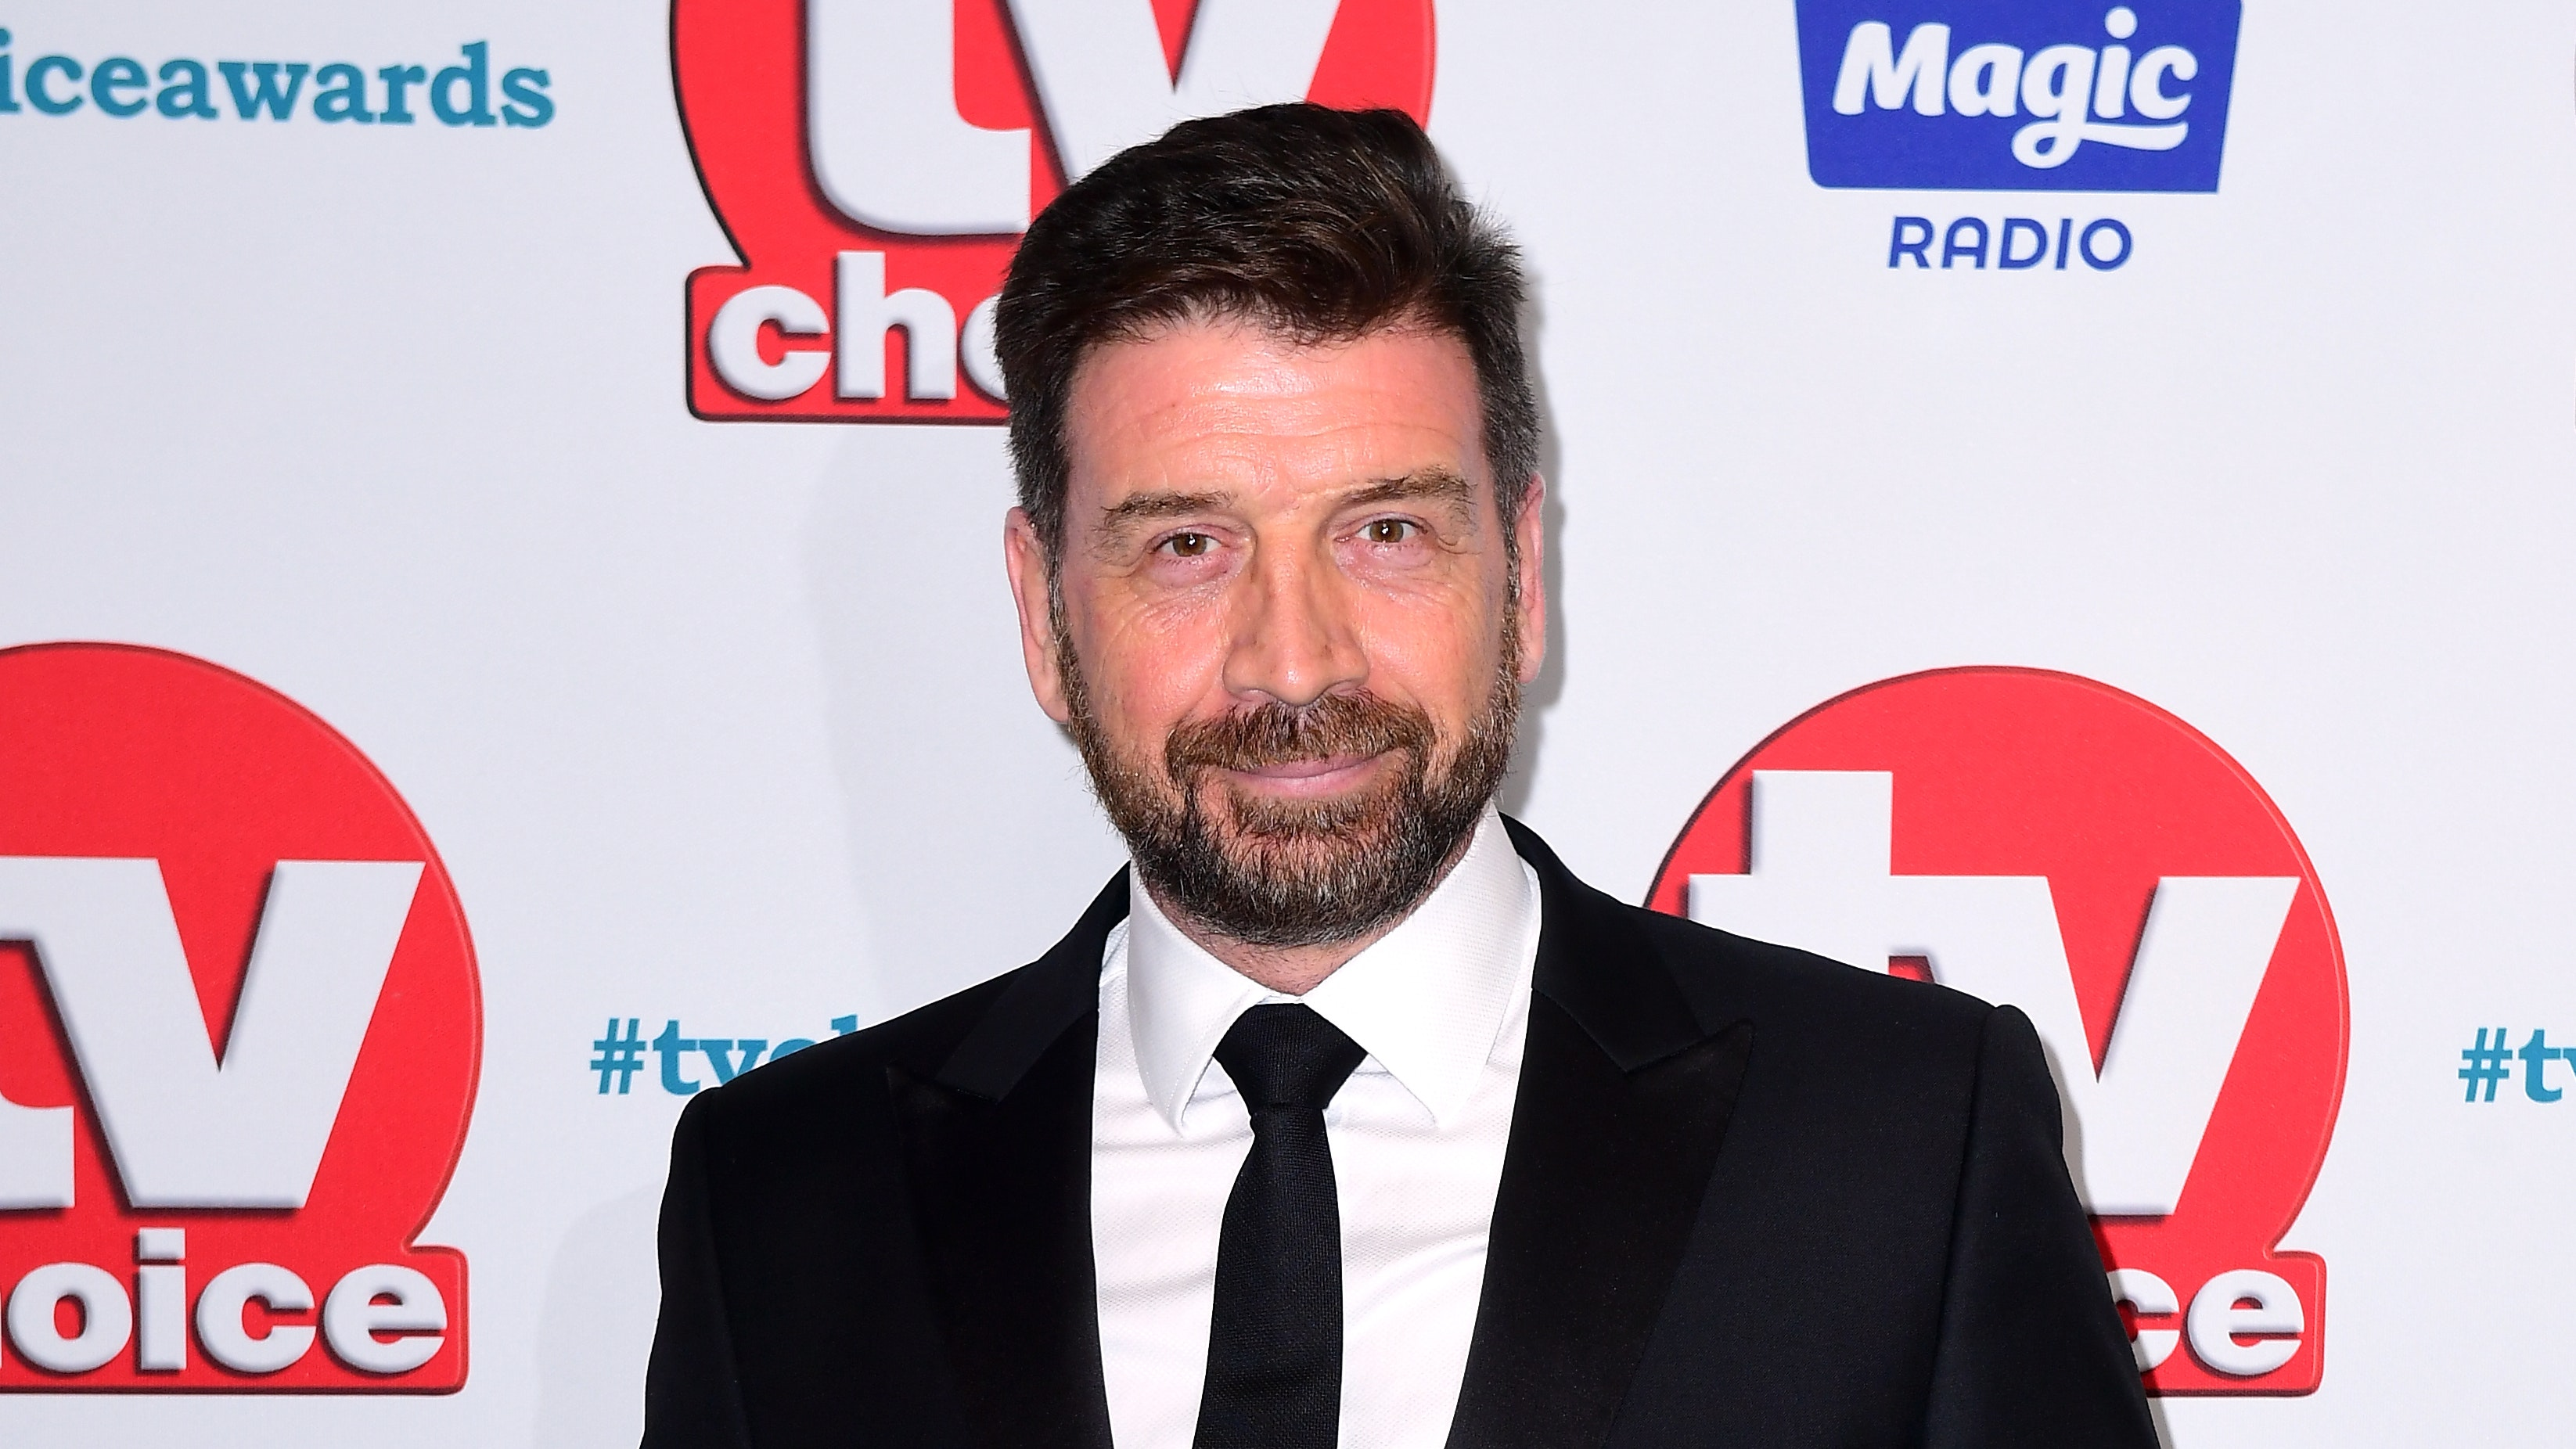 Nick Knowles admits driving while using mobile phone